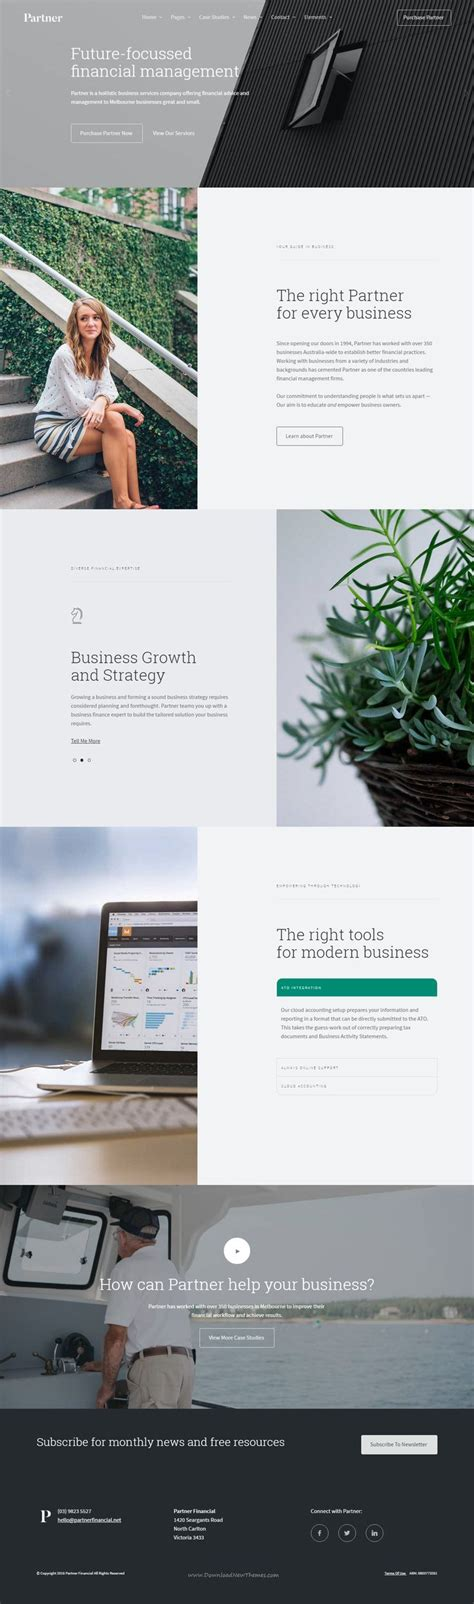 25 Best Ideas About Law Firm Logo On Pinterest Logo Design Logos Cards And Personal Branding Accounting Firm Website Template